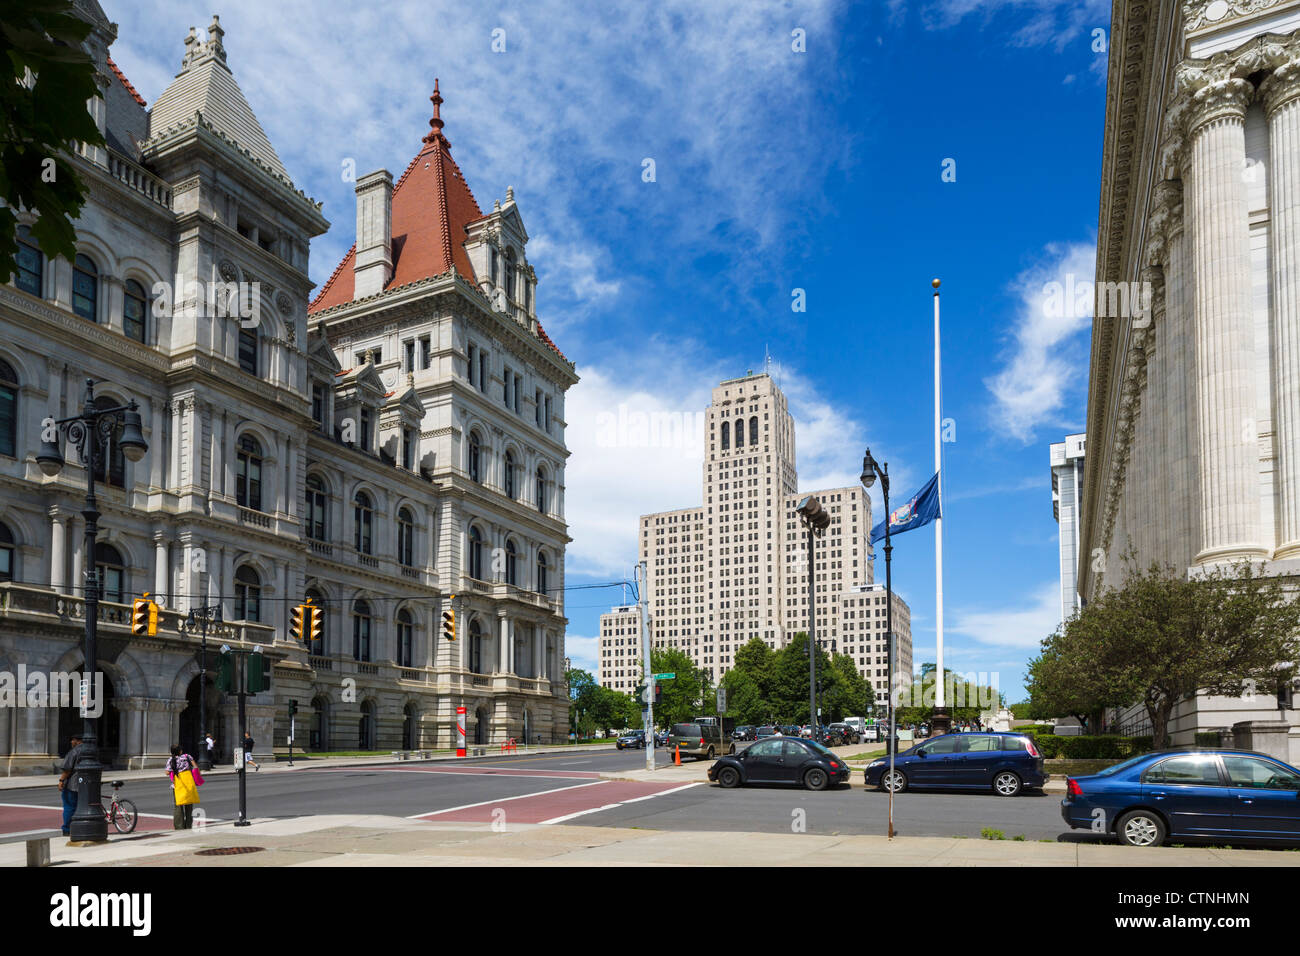 View down Washington Avenue with State Capitol to left and Alfred E Smith Building in background, Albany, New York - Stock Image